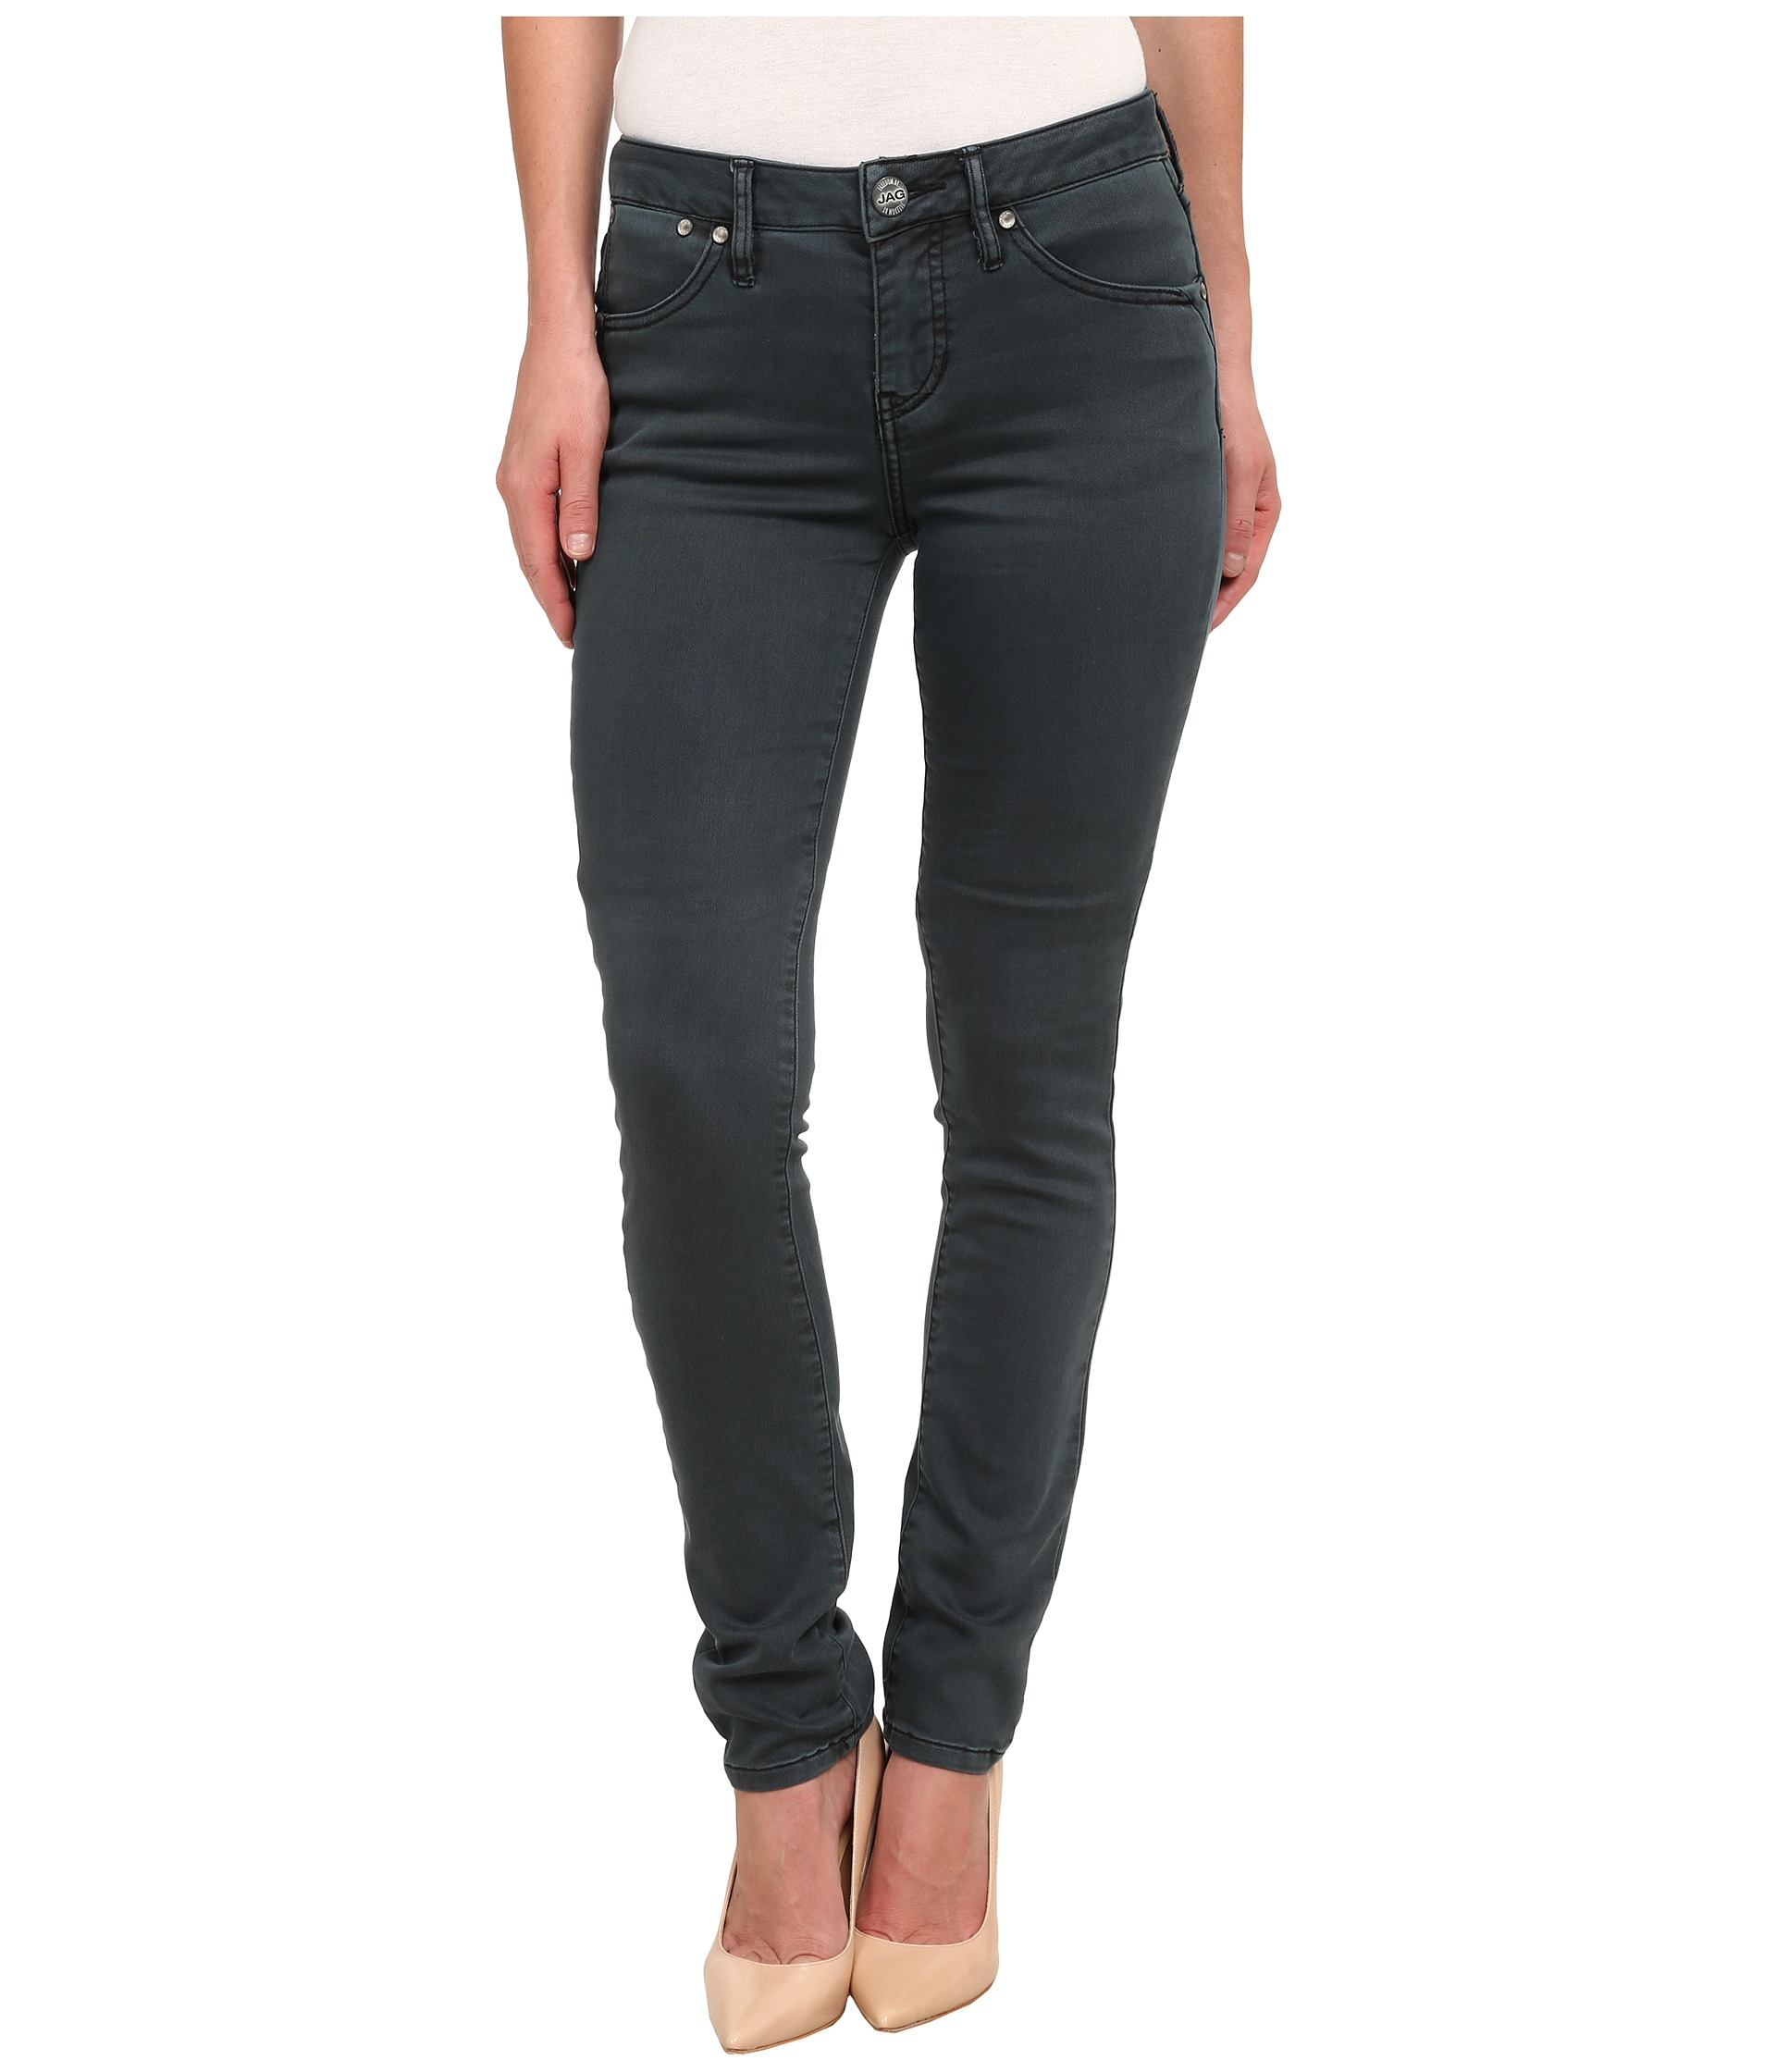 Lyst - Jag Jeans Janette Mid Rise Slim Knit Denim In Moody in Gray